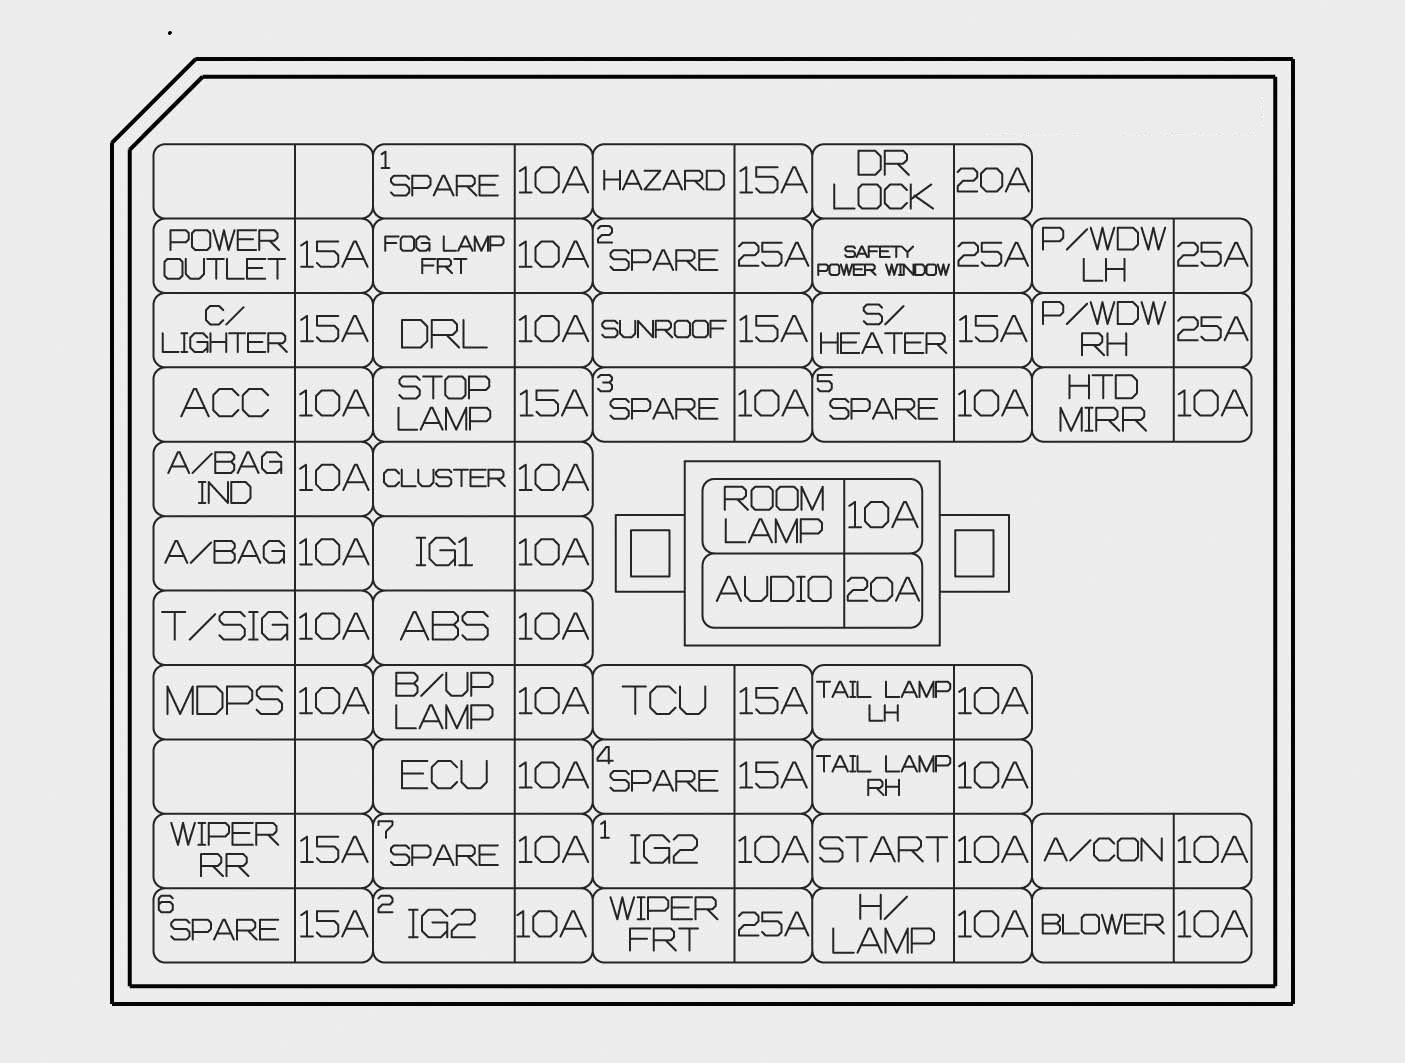 [WQZT_9871]  Hyundai Sonata (2015) – fuse box diagram - Carknowledge.info | 2013 Hyundai Sonata Fuse Box |  | Carknowledge.info